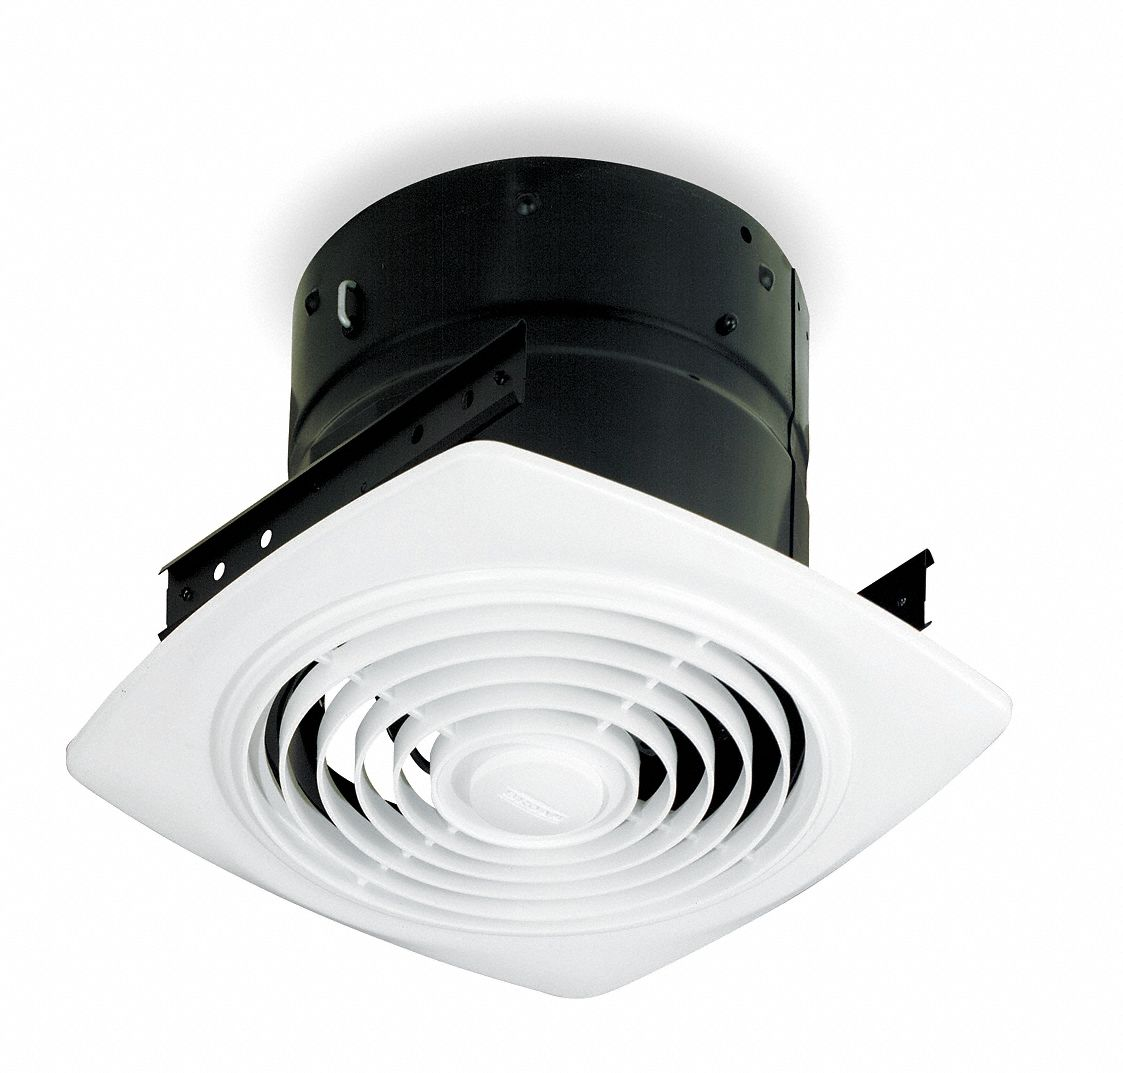 Residential Wall and Ceiling Exhaust Fans - Grainger Industrial Supply